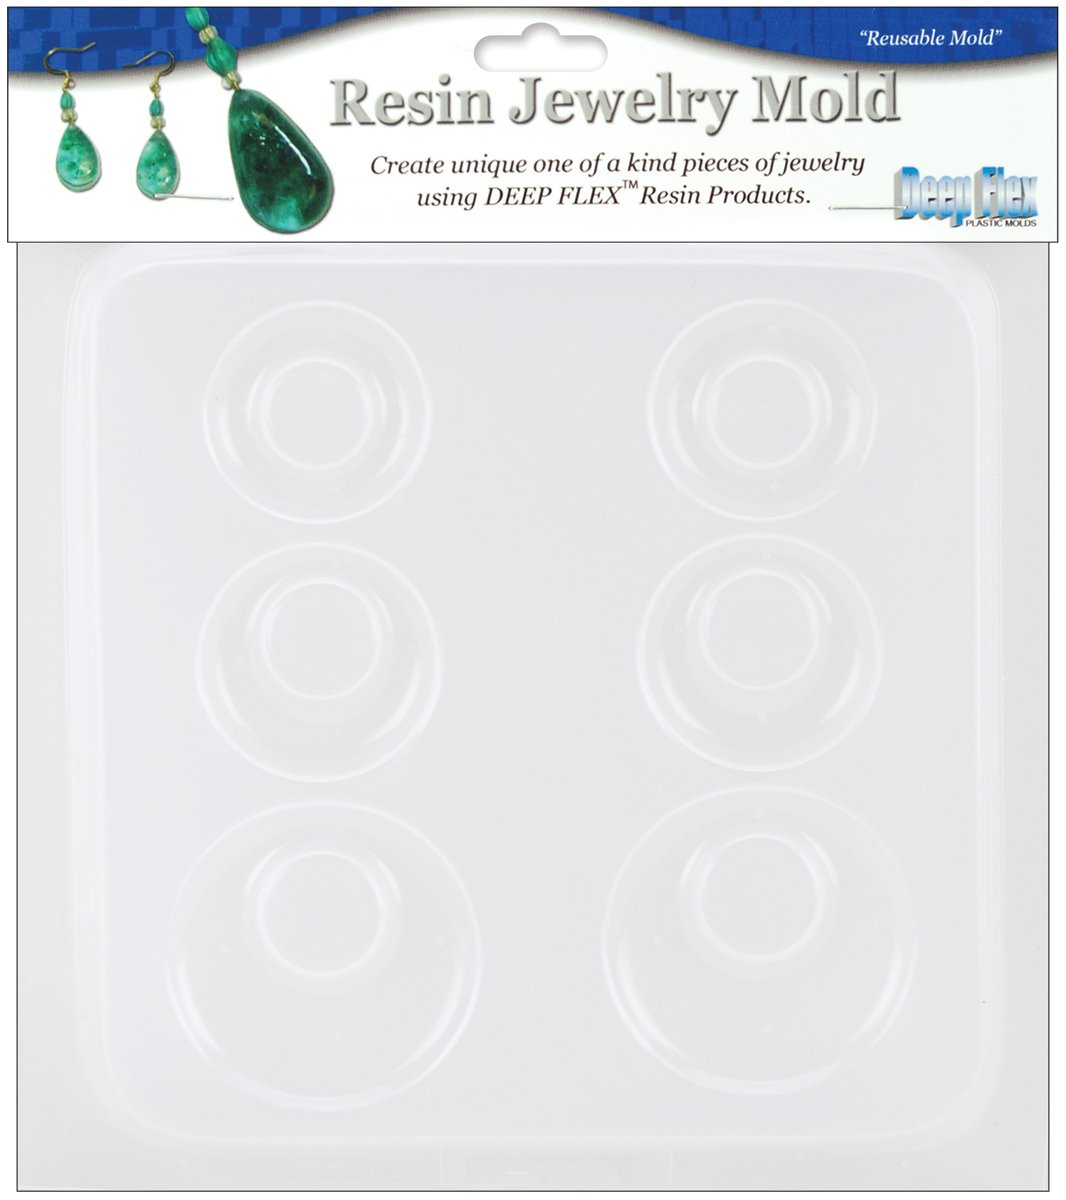 Yaley 3-Pair Resin Jewelry Reusable Mold 6 Plastic Earrings, 1/2 by 7-Inch 08-0396